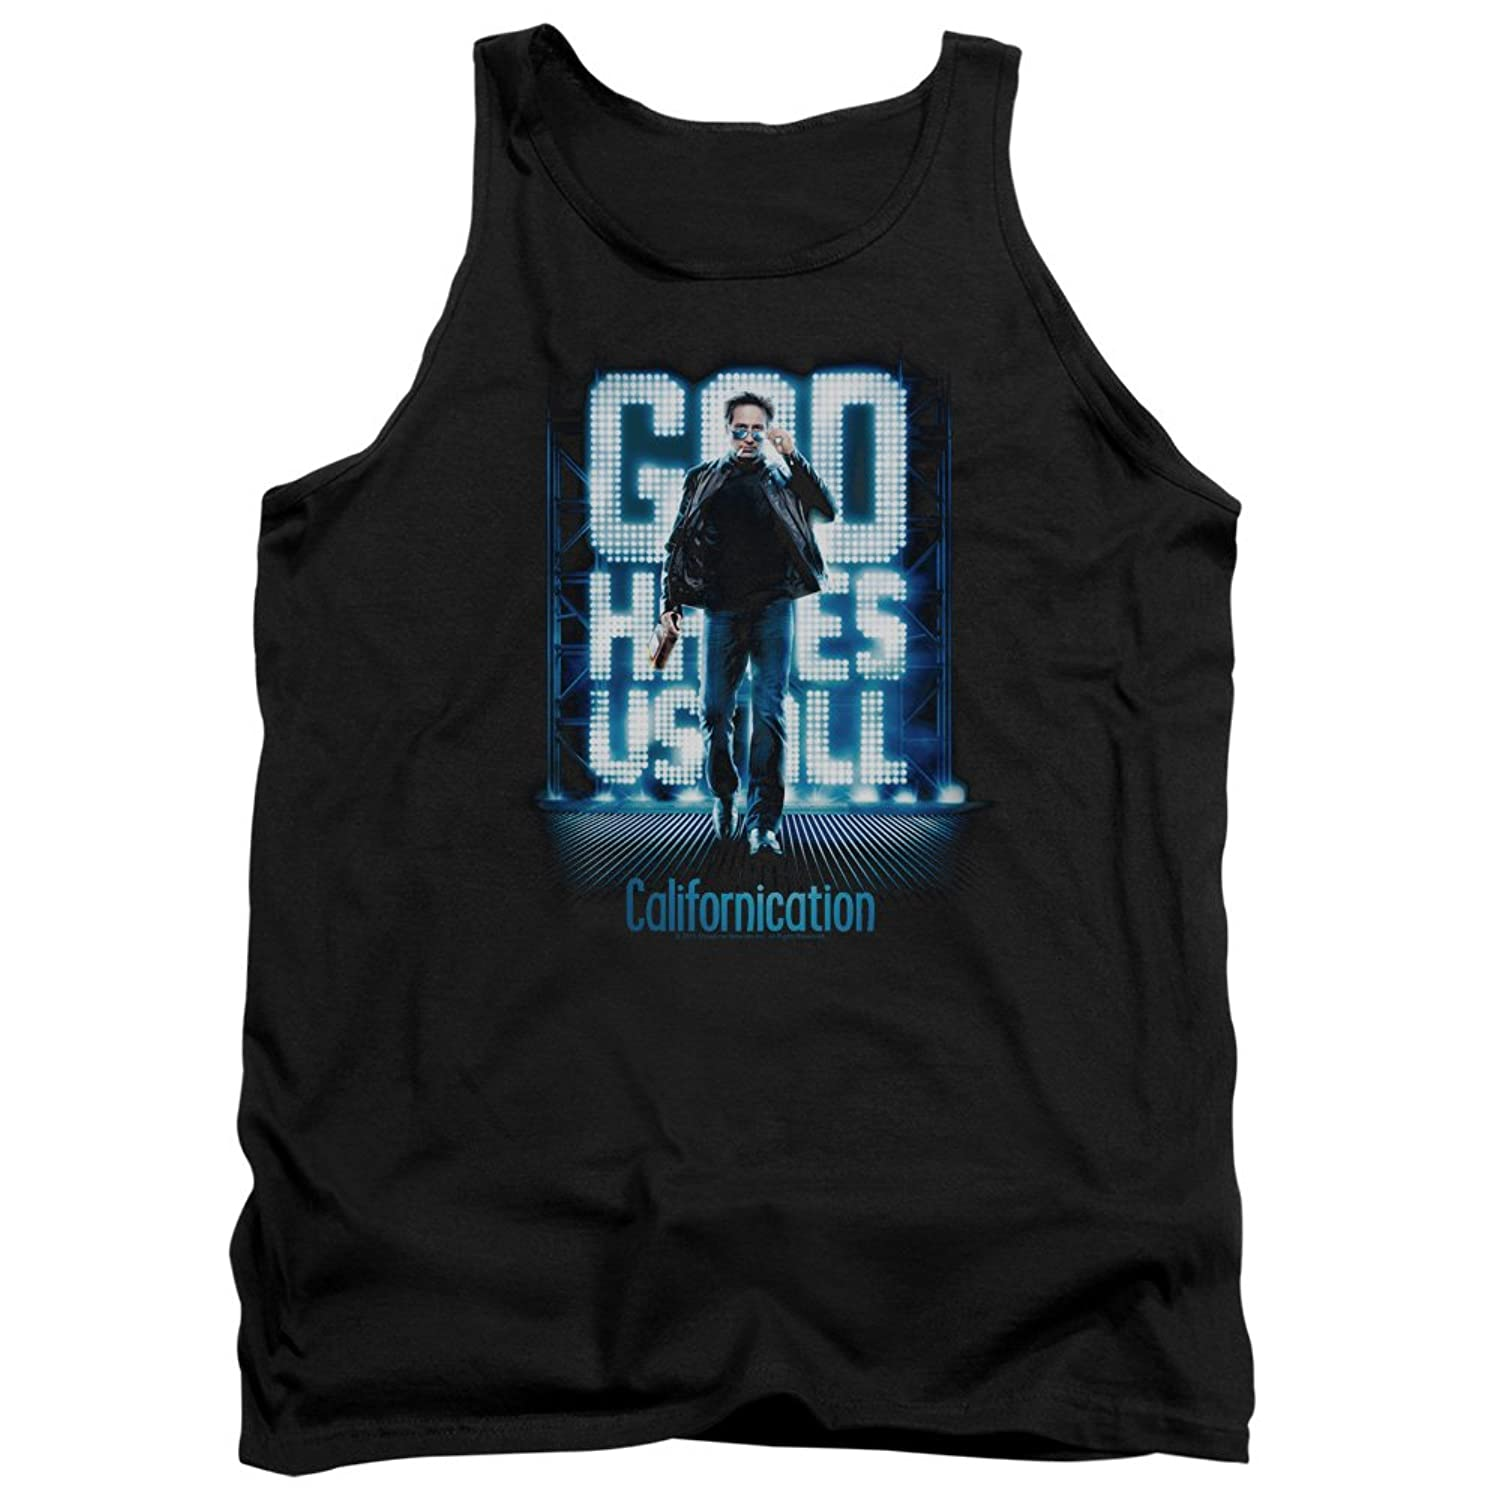 Californication - Mens Hit The Lights Tank Top